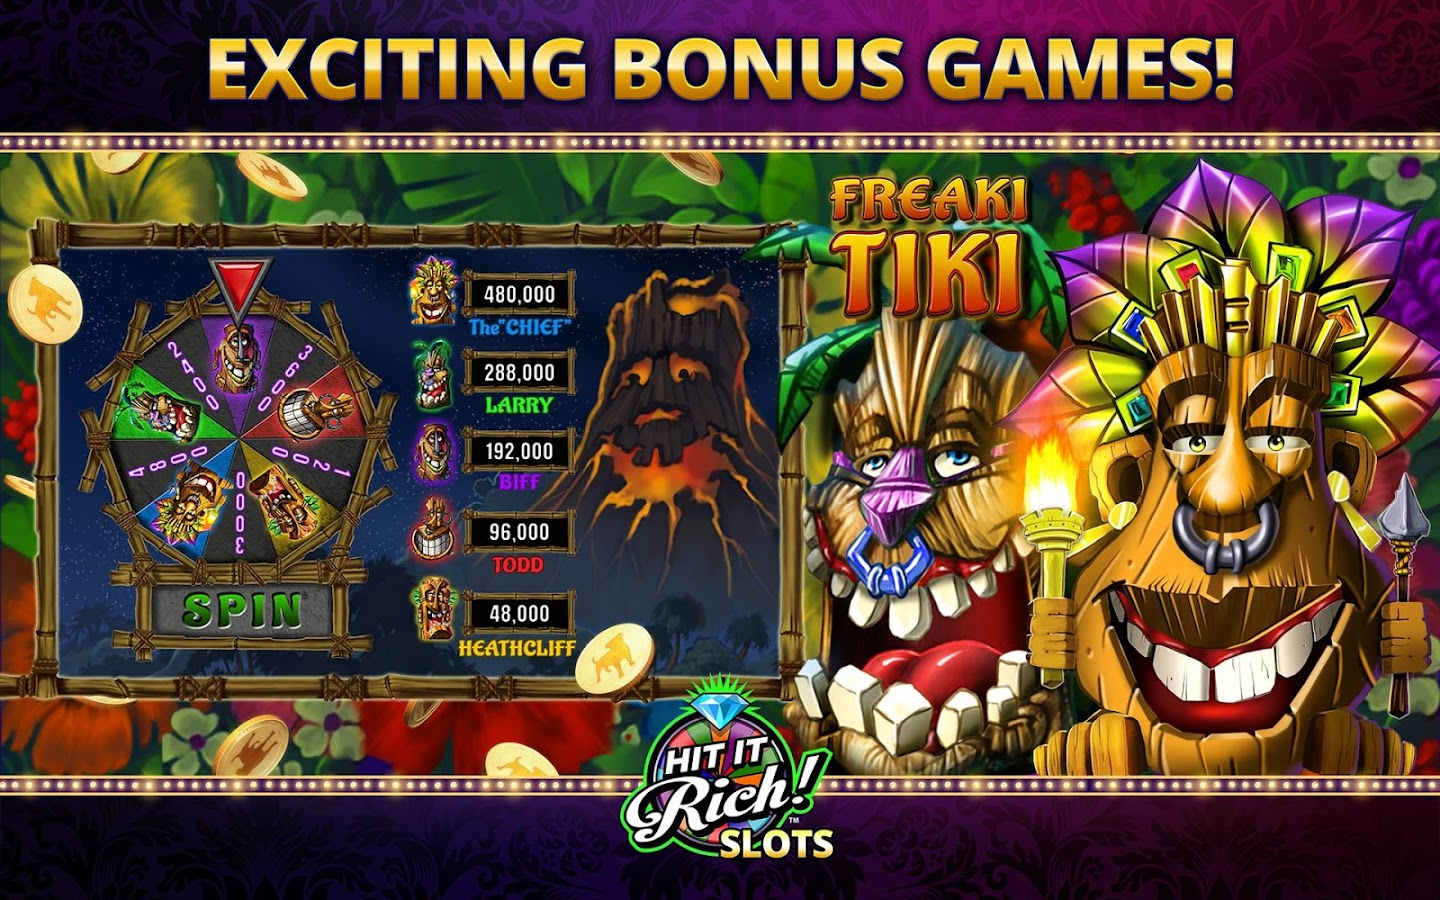 Hit it rich casino slots bonus collector